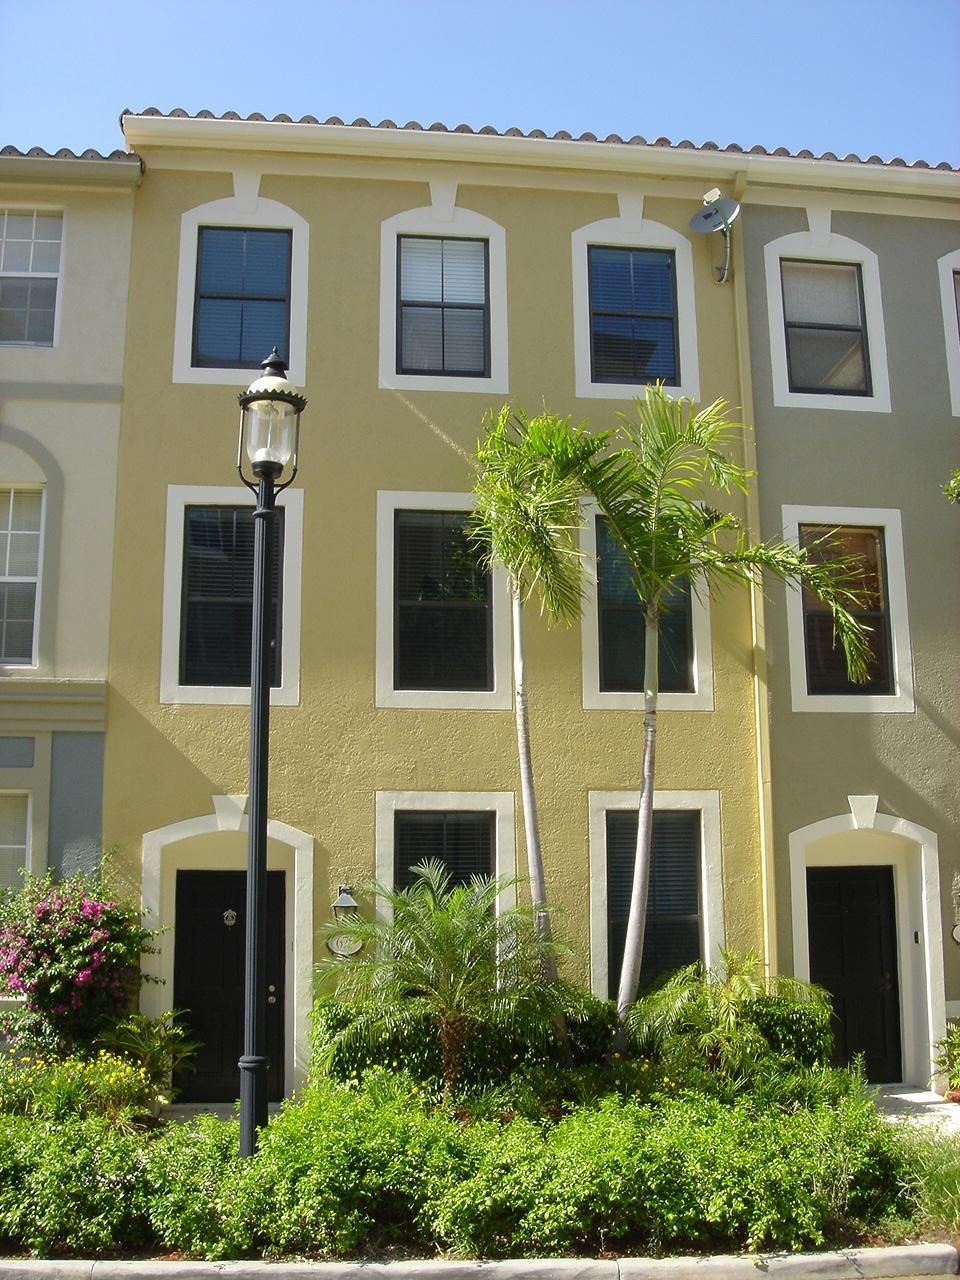 675 Hibiscus Street, West Palm Beach, Florida 33401, 3 Bedrooms Bedrooms, ,2.1 BathroomsBathrooms,Townhouse,For Sale,Hibiscus,RX-10499276